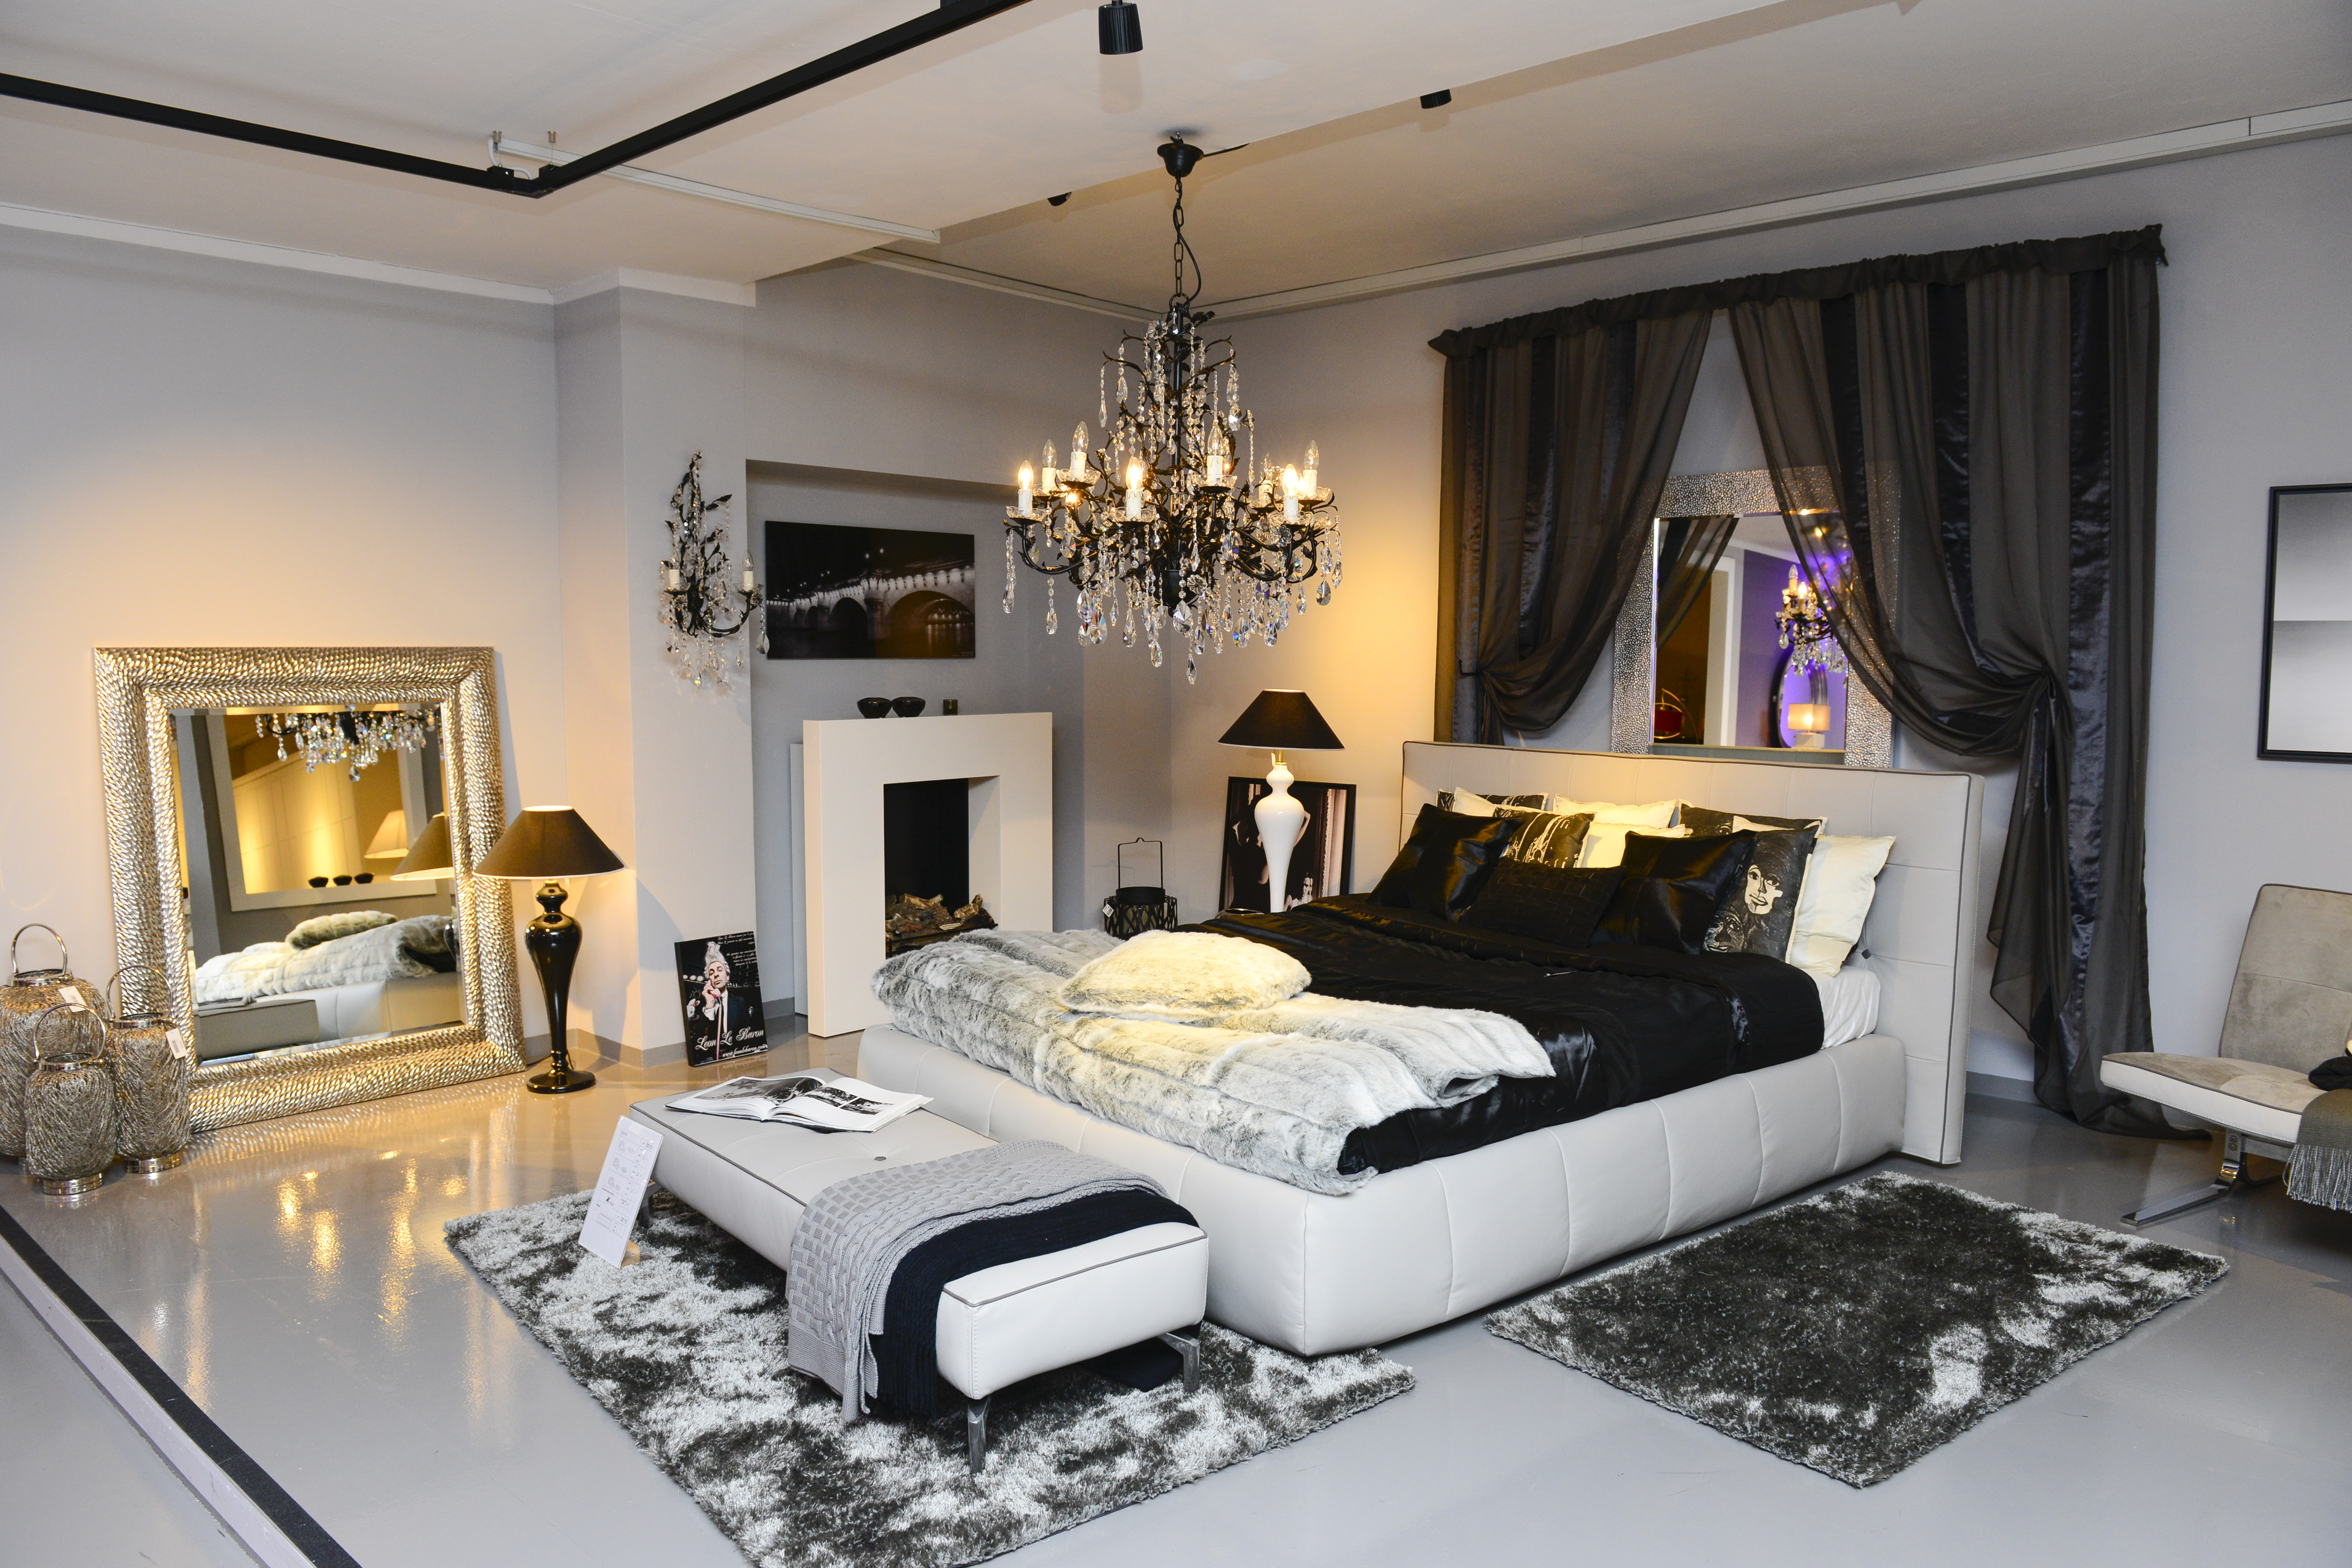 best domicil m bel gmbh images. Black Bedroom Furniture Sets. Home Design Ideas